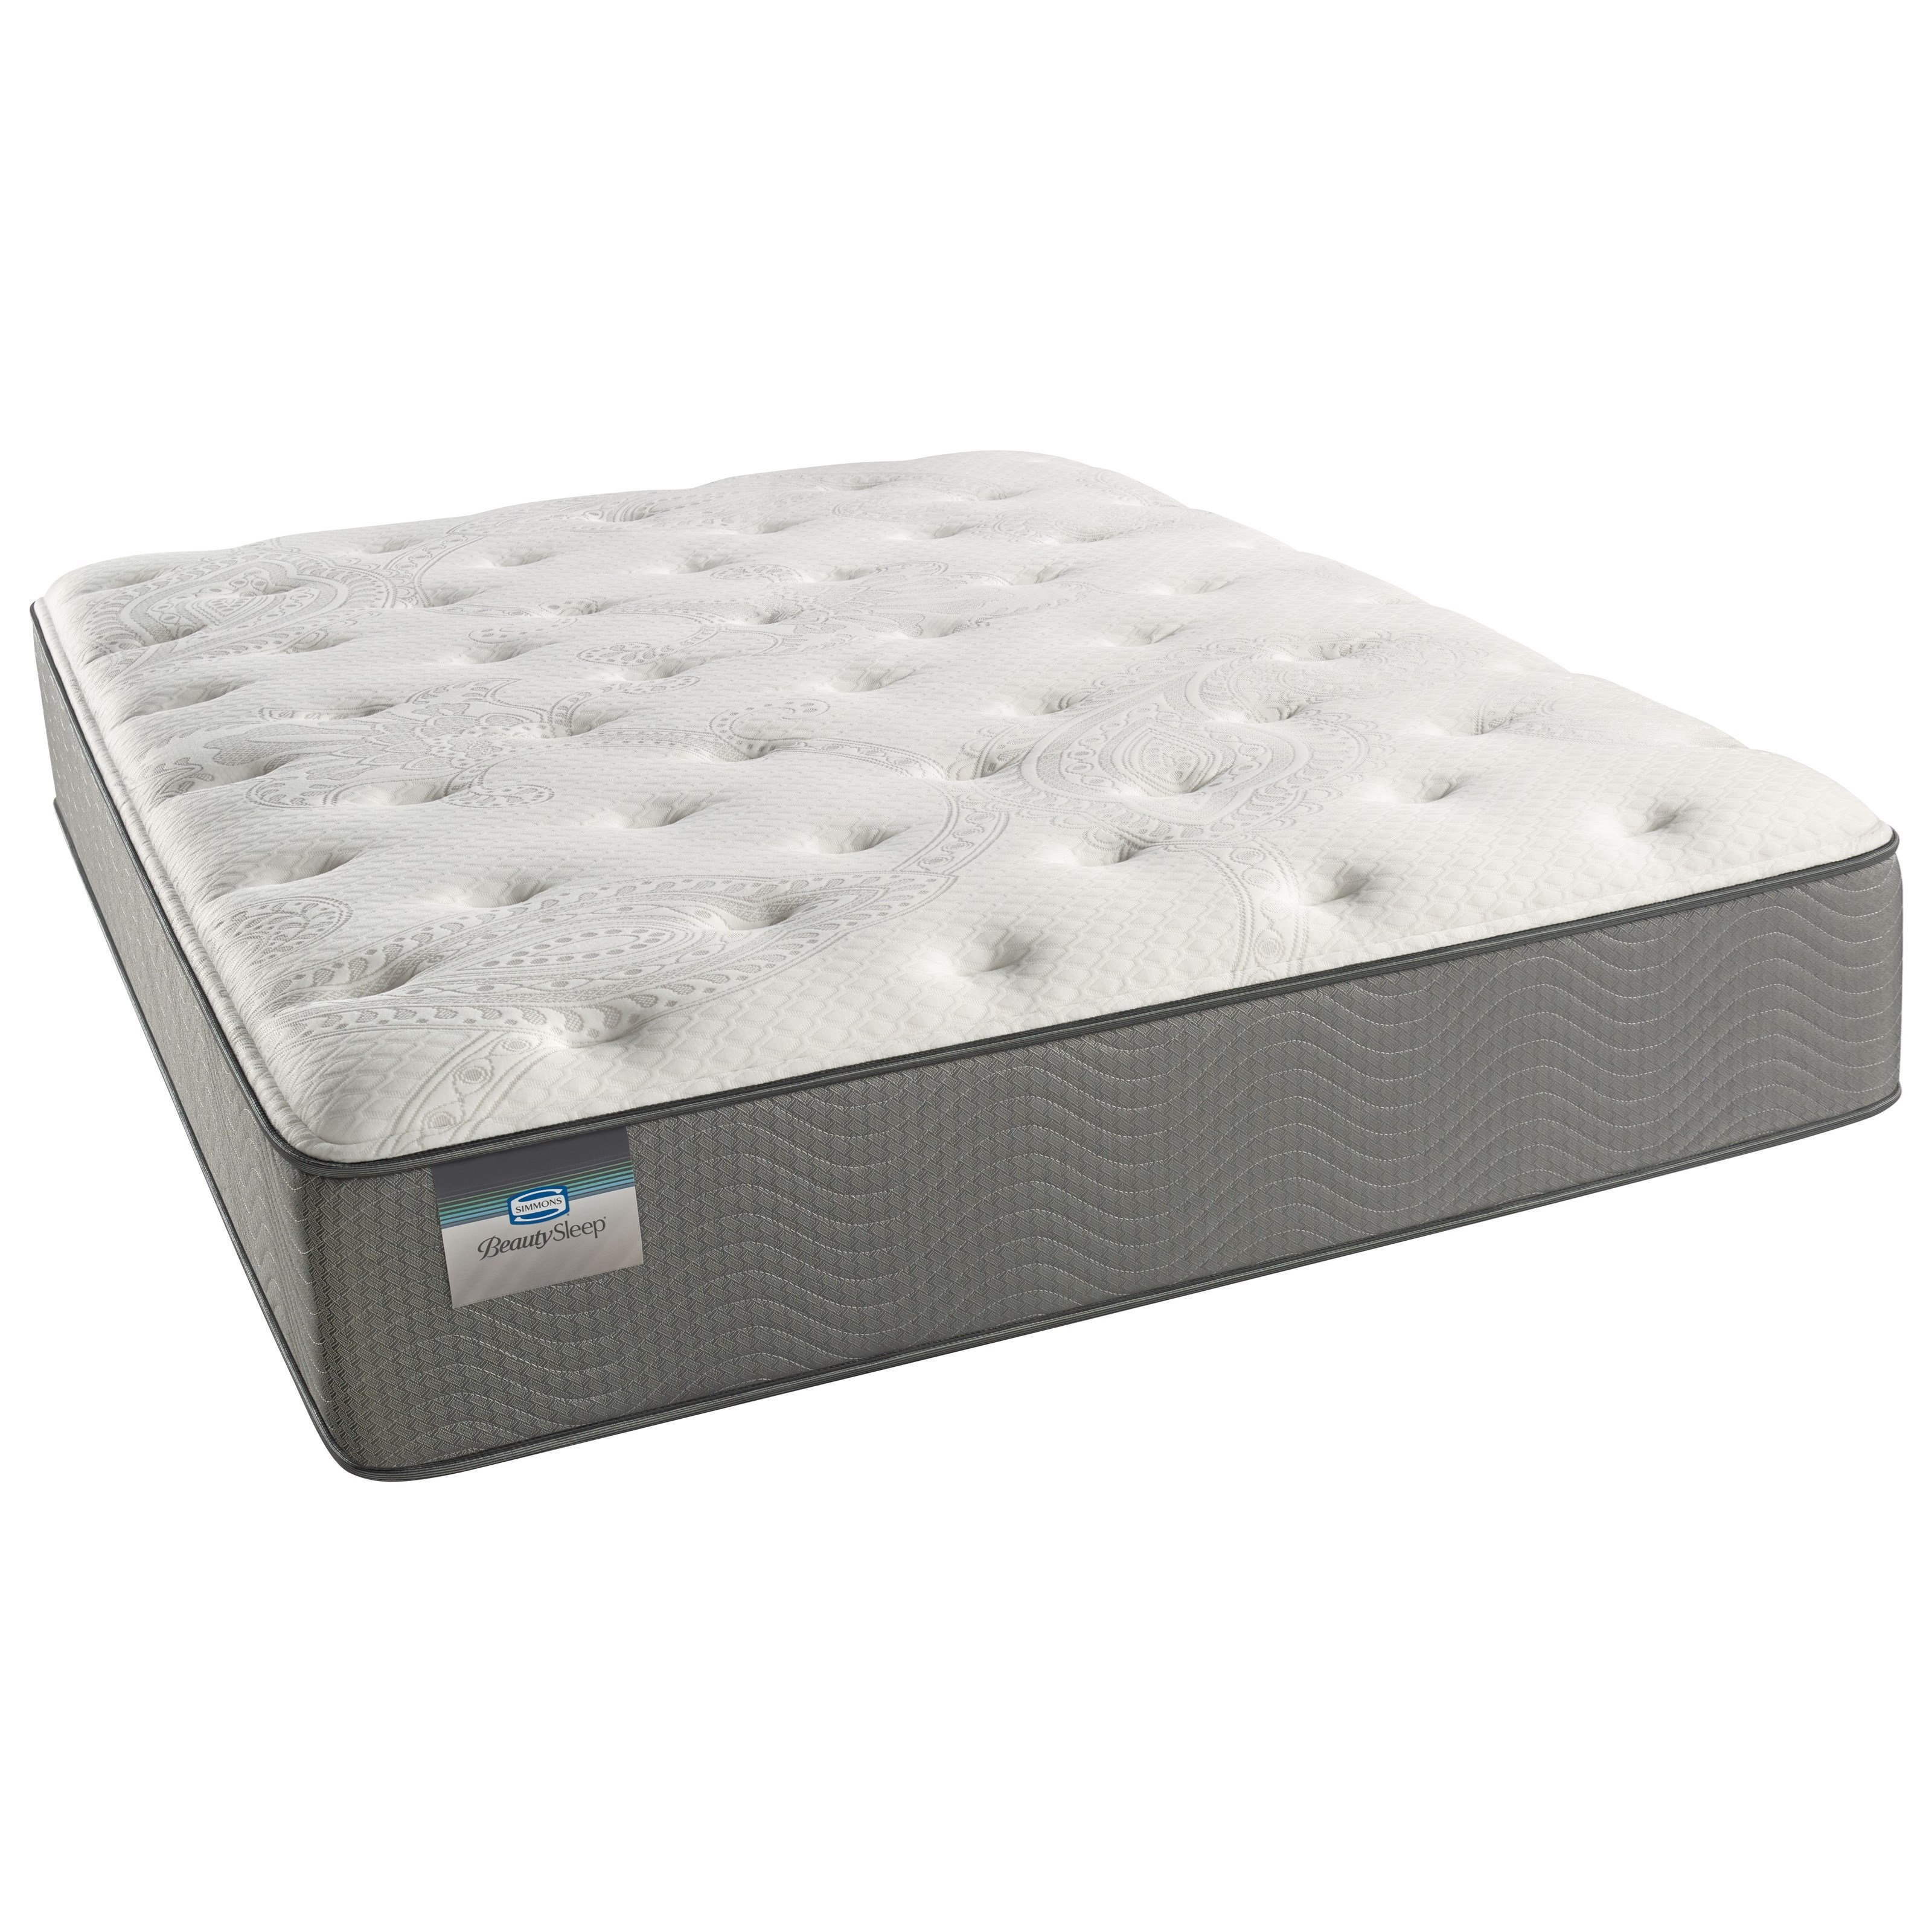 Beautyrest Beautysleep White Pass Luxury Firm  Beautyrest Beautysleep Twin XL Mattress - Item Number: 700600210-1020